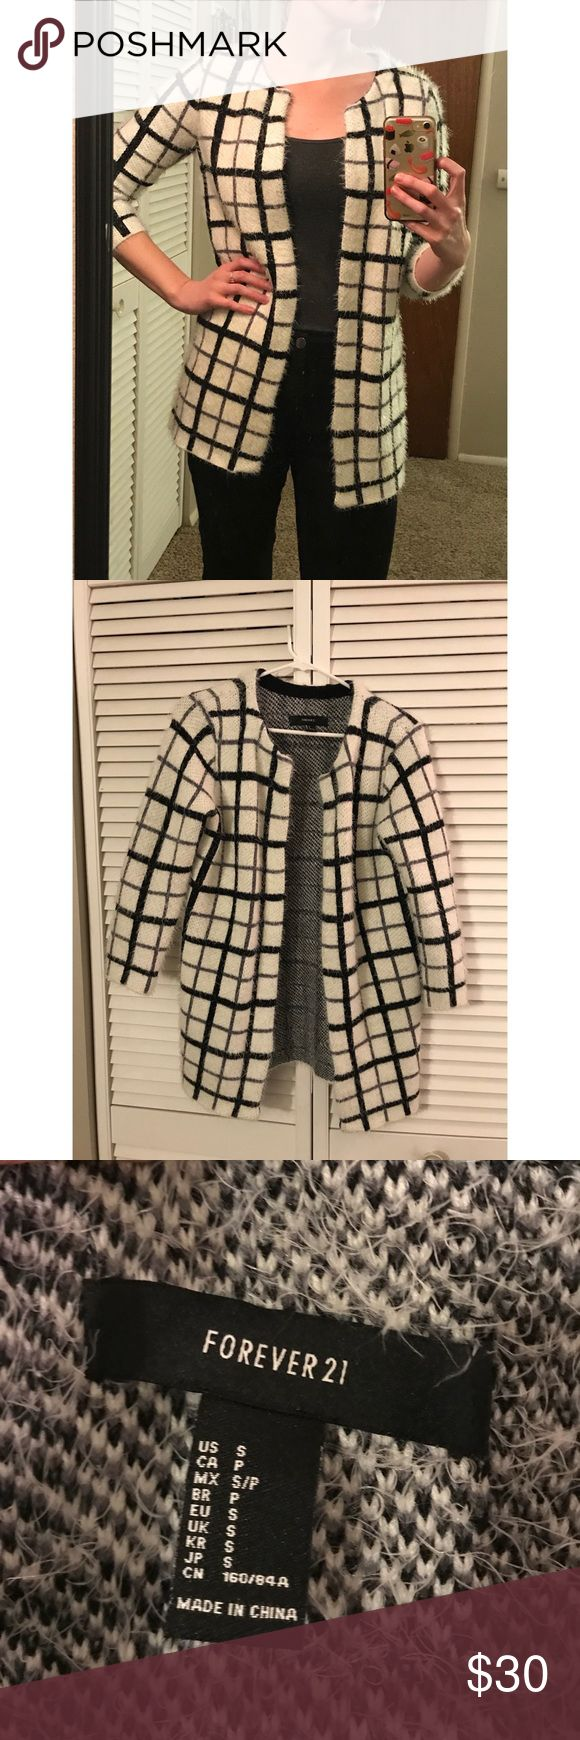 Thick and cozy checkered sweater This adorable sweater is super thick and soft. Almost could be worn like a jacket. It's really great quality for Forever 21 and was only worn once. Pet free/smoke free home. Would fit a small/medium. Forever 21 Sweaters Cardigans